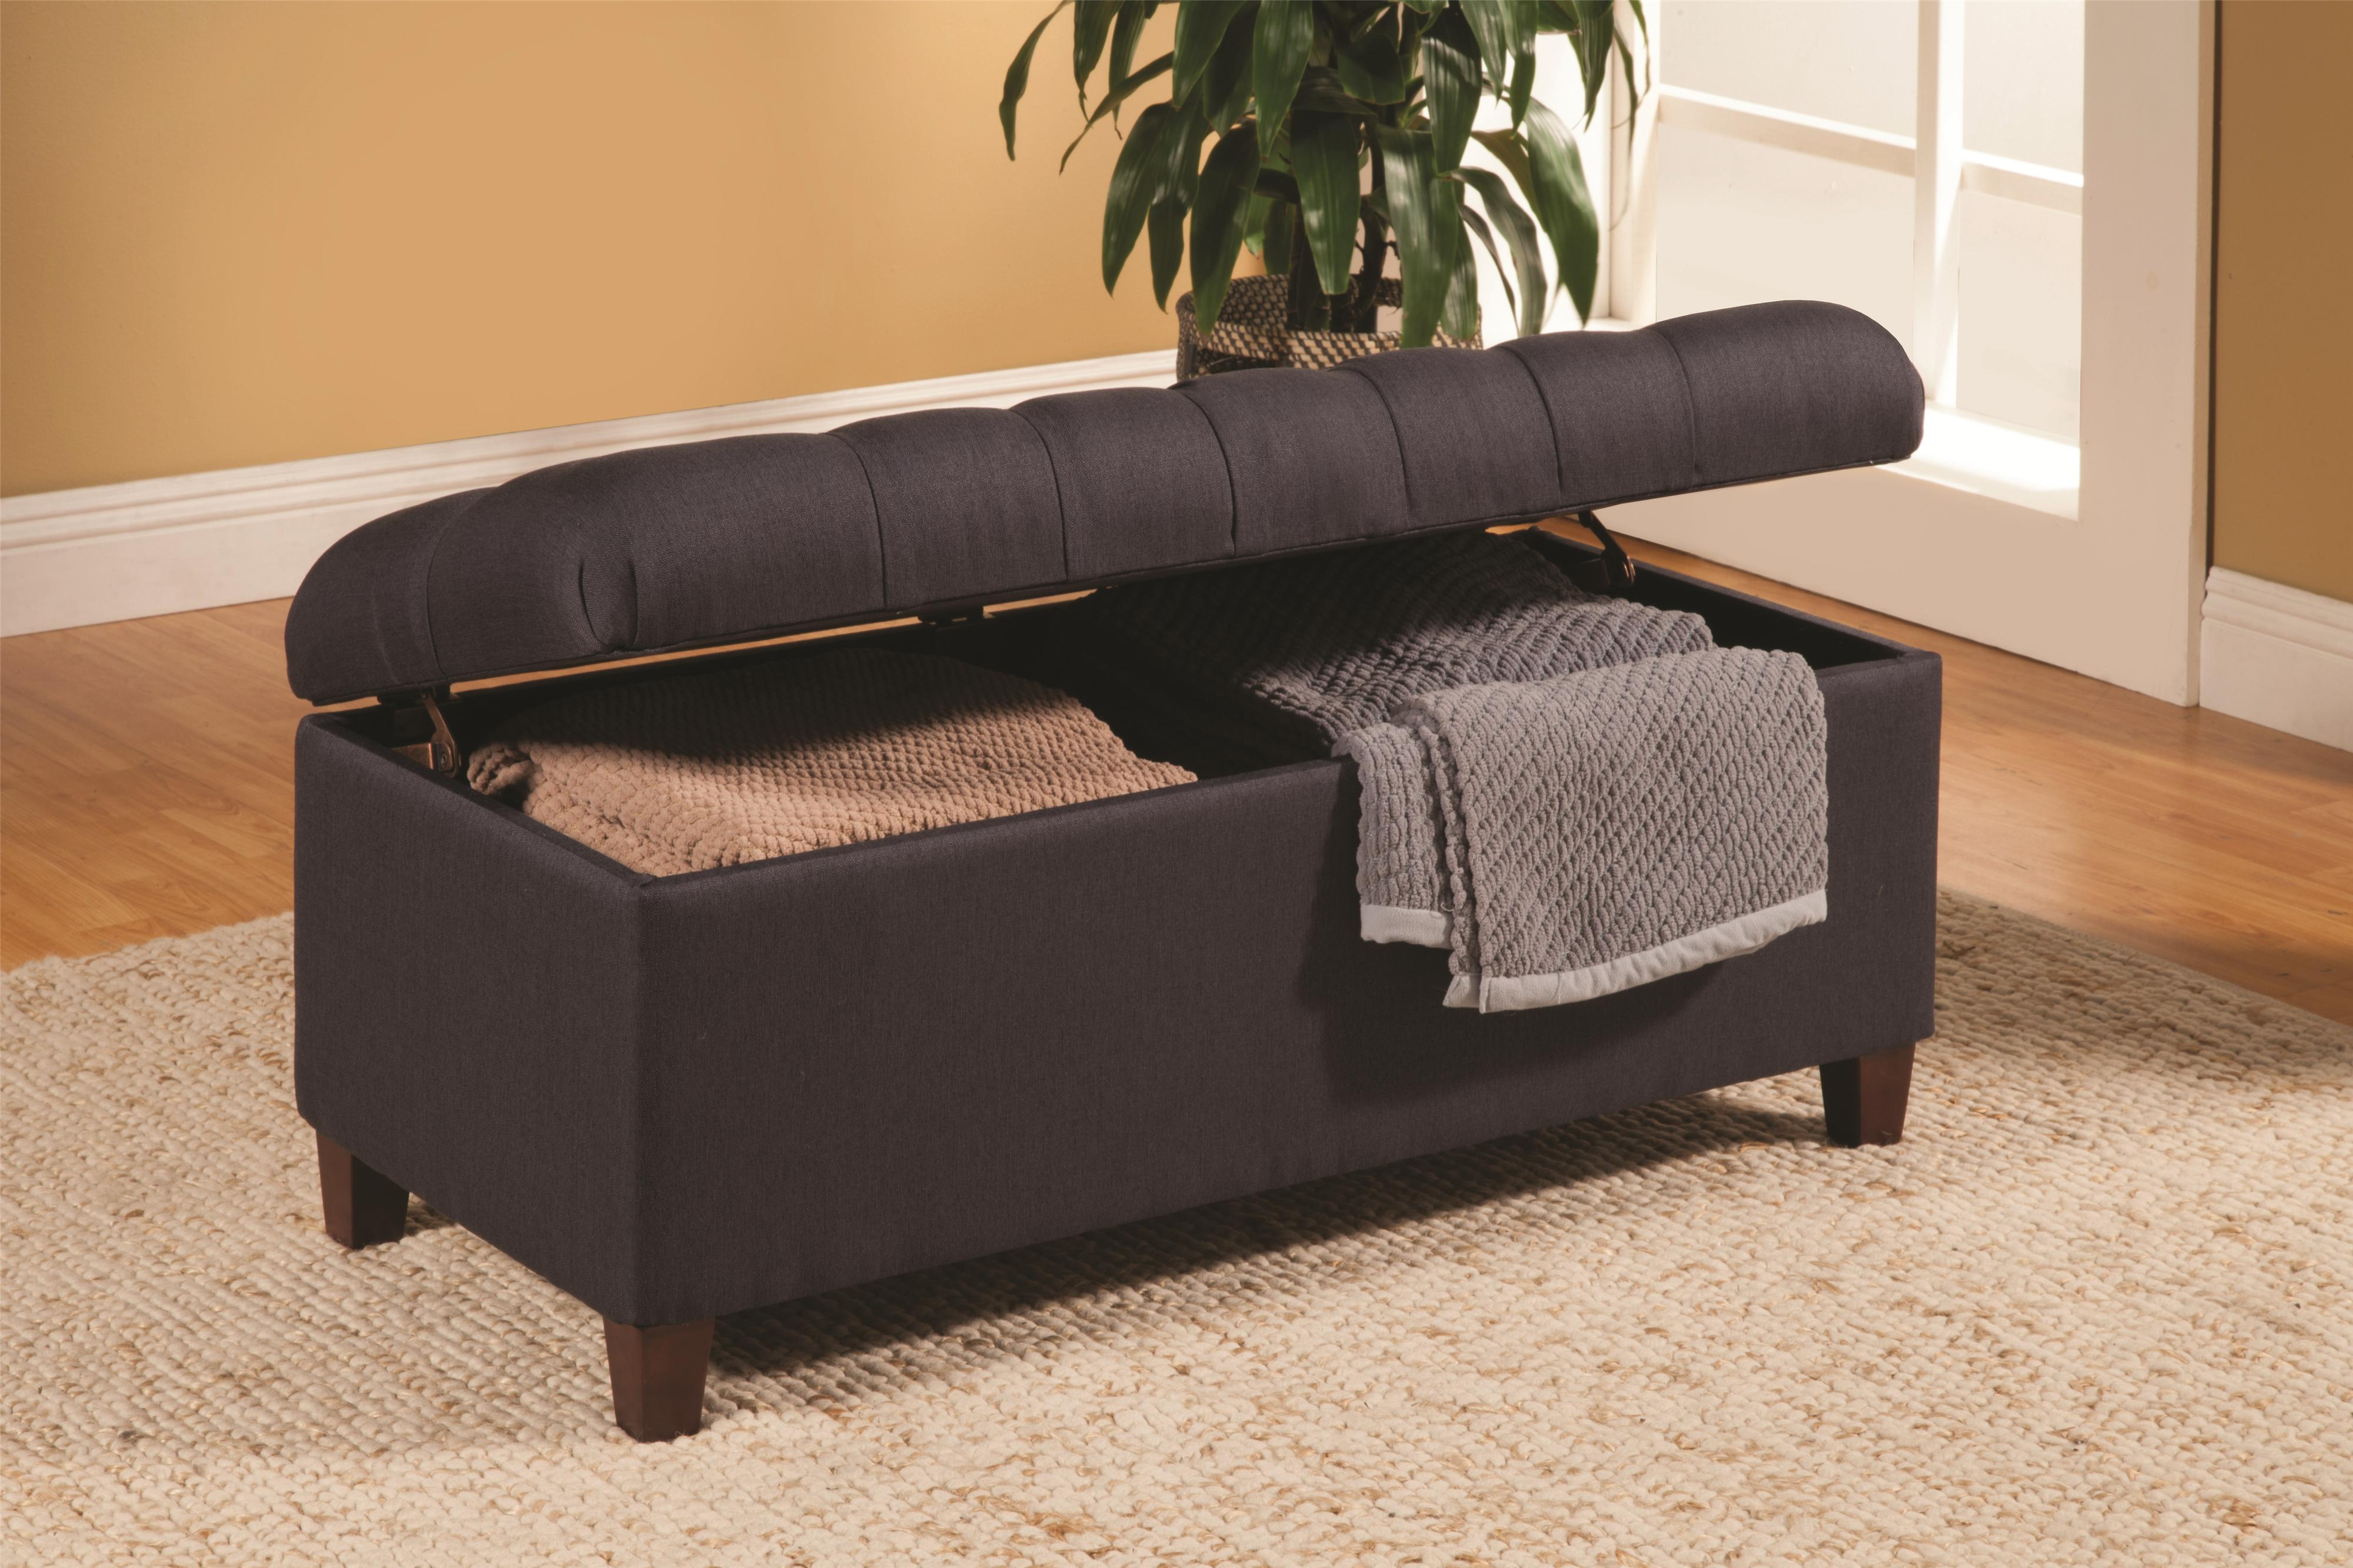 Coaster ottomans 500066 tufted storage bench furniture superstore nm upholstered benches for Living room bench with storage